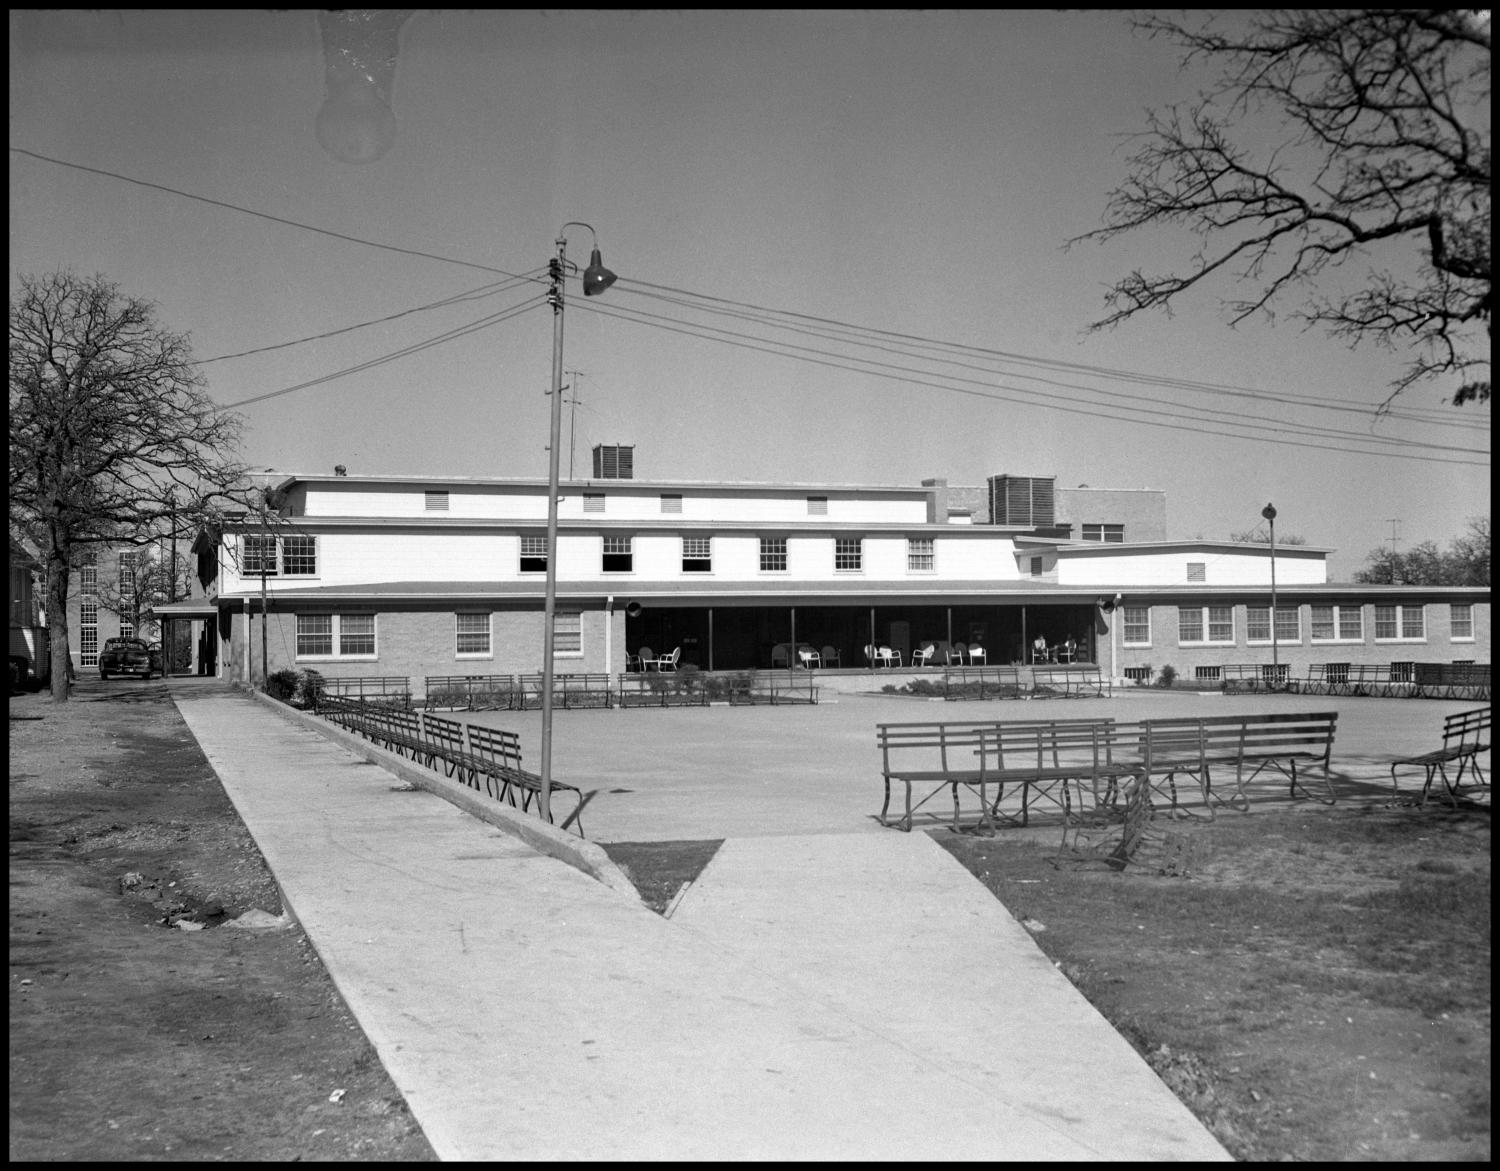 Black and white photo of a wide three story building with a large empty concrete slab in front. Around the edges of the concrete slab are benches, and a telephone pole stands at the corner closest to the camera.